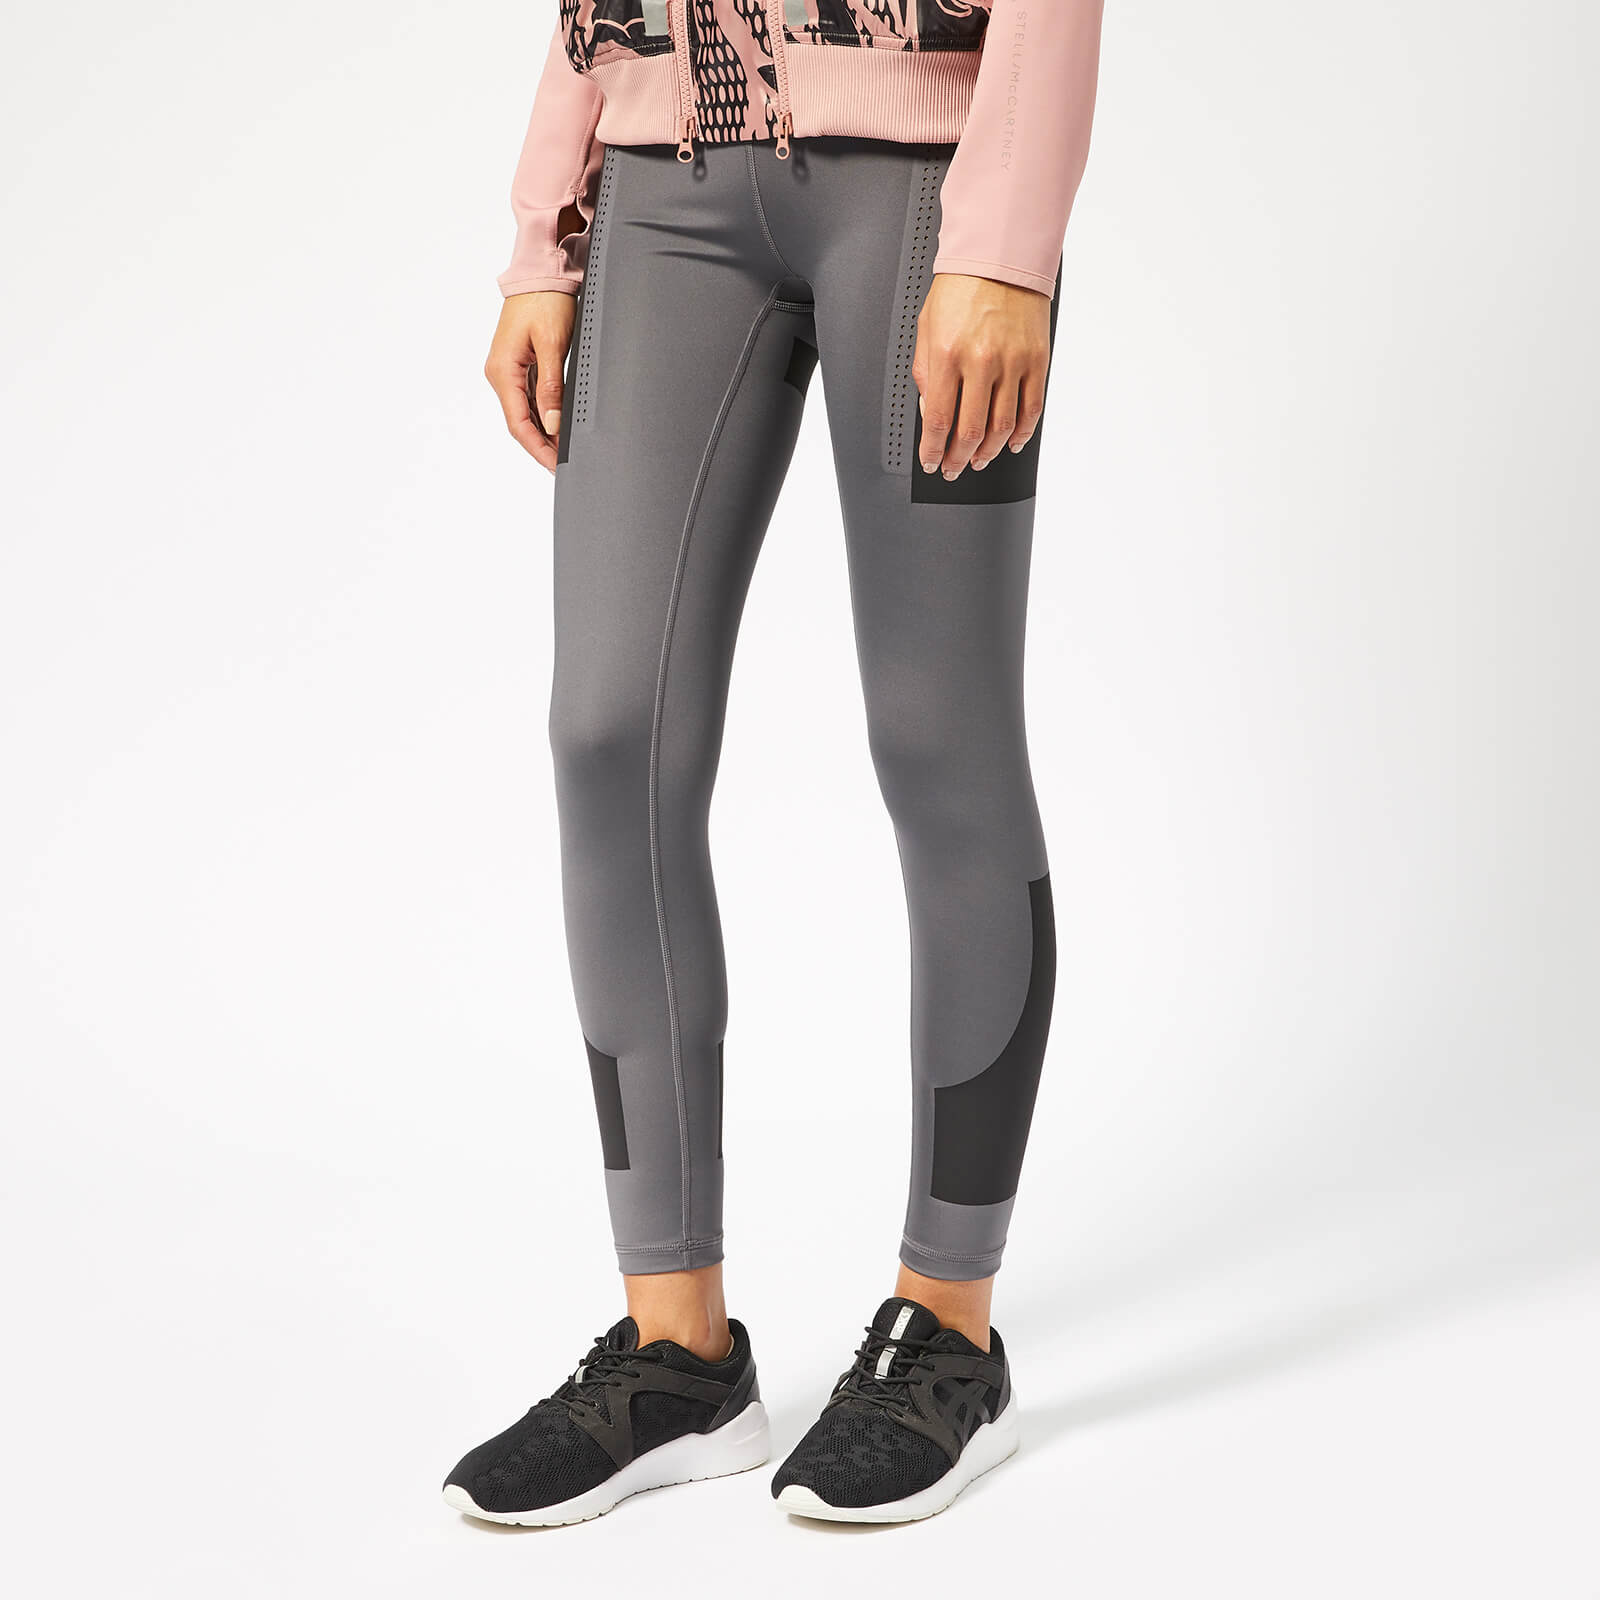 29a108ca22c33a adidas by Stella McCartney Women's Train Tights - Granite - Free UK  Delivery over £50